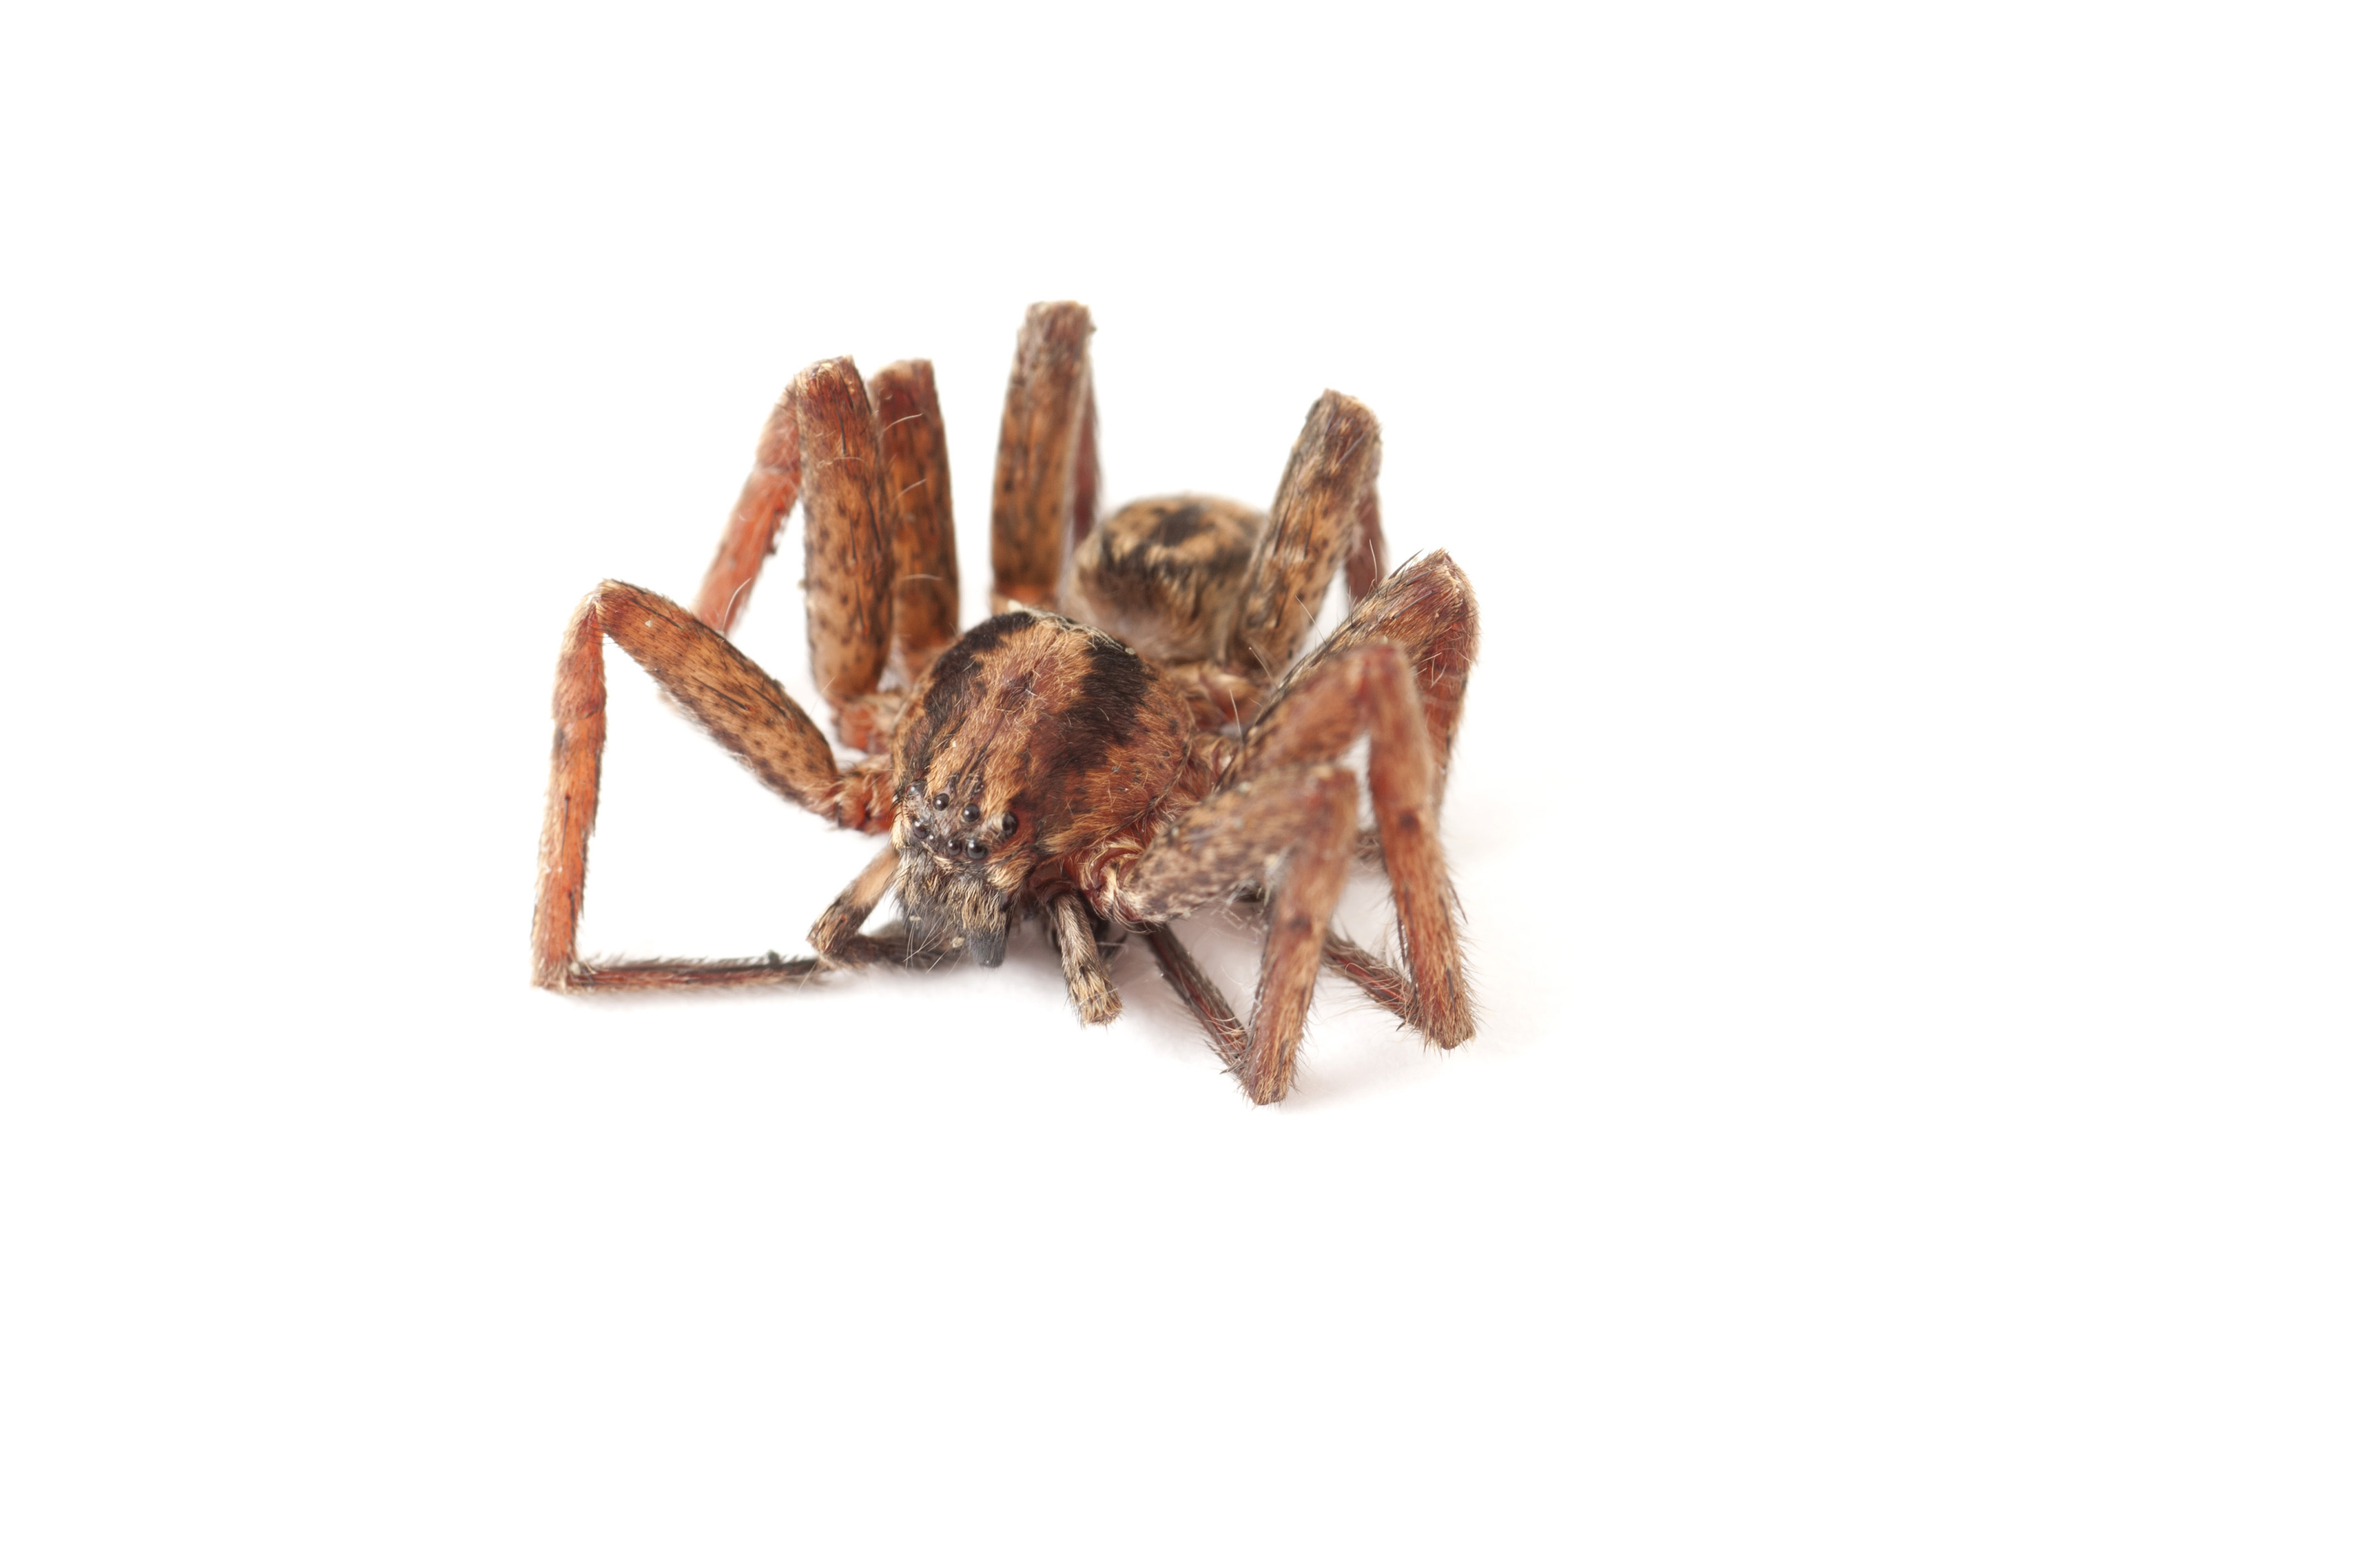 spider with its legs retracted and curled up under the body on a white background. eight simple eyes can be seen on the front of the cephalothorax